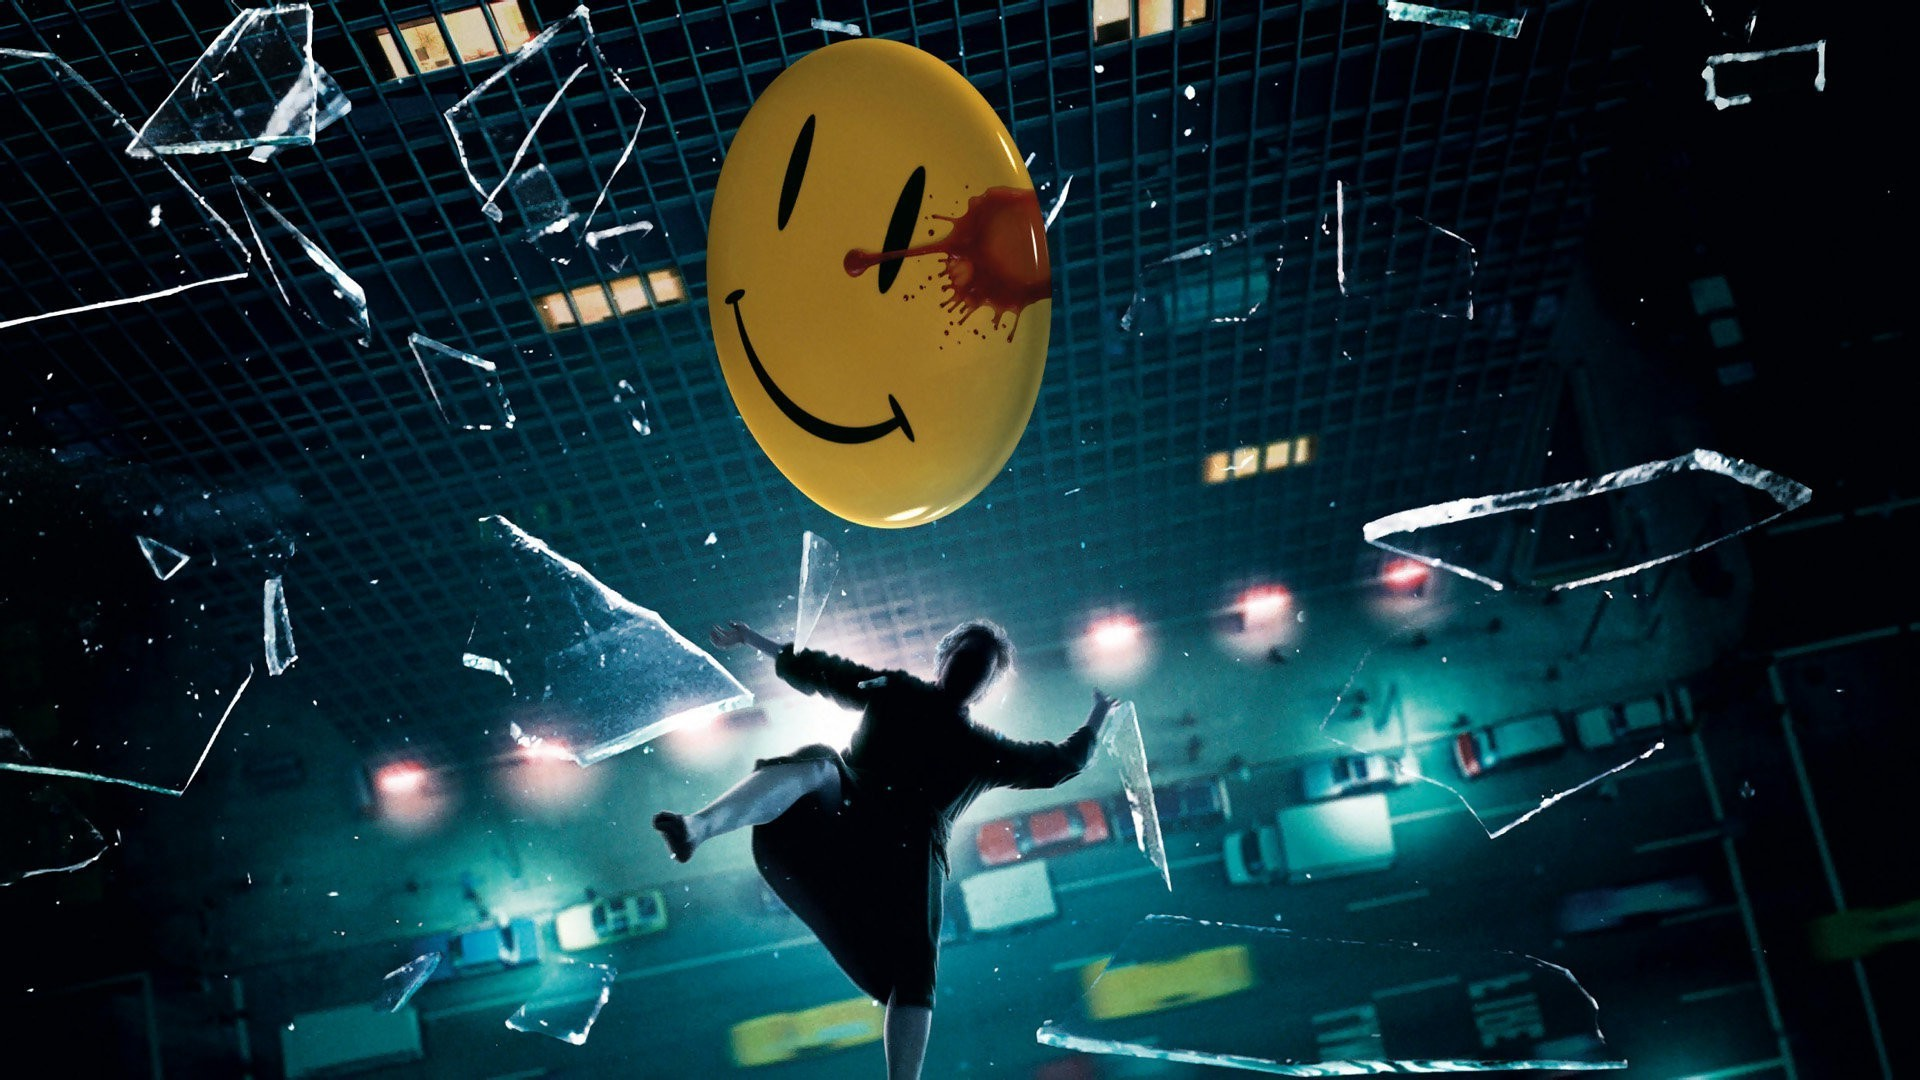 watchmen wallpapers (72+ images)